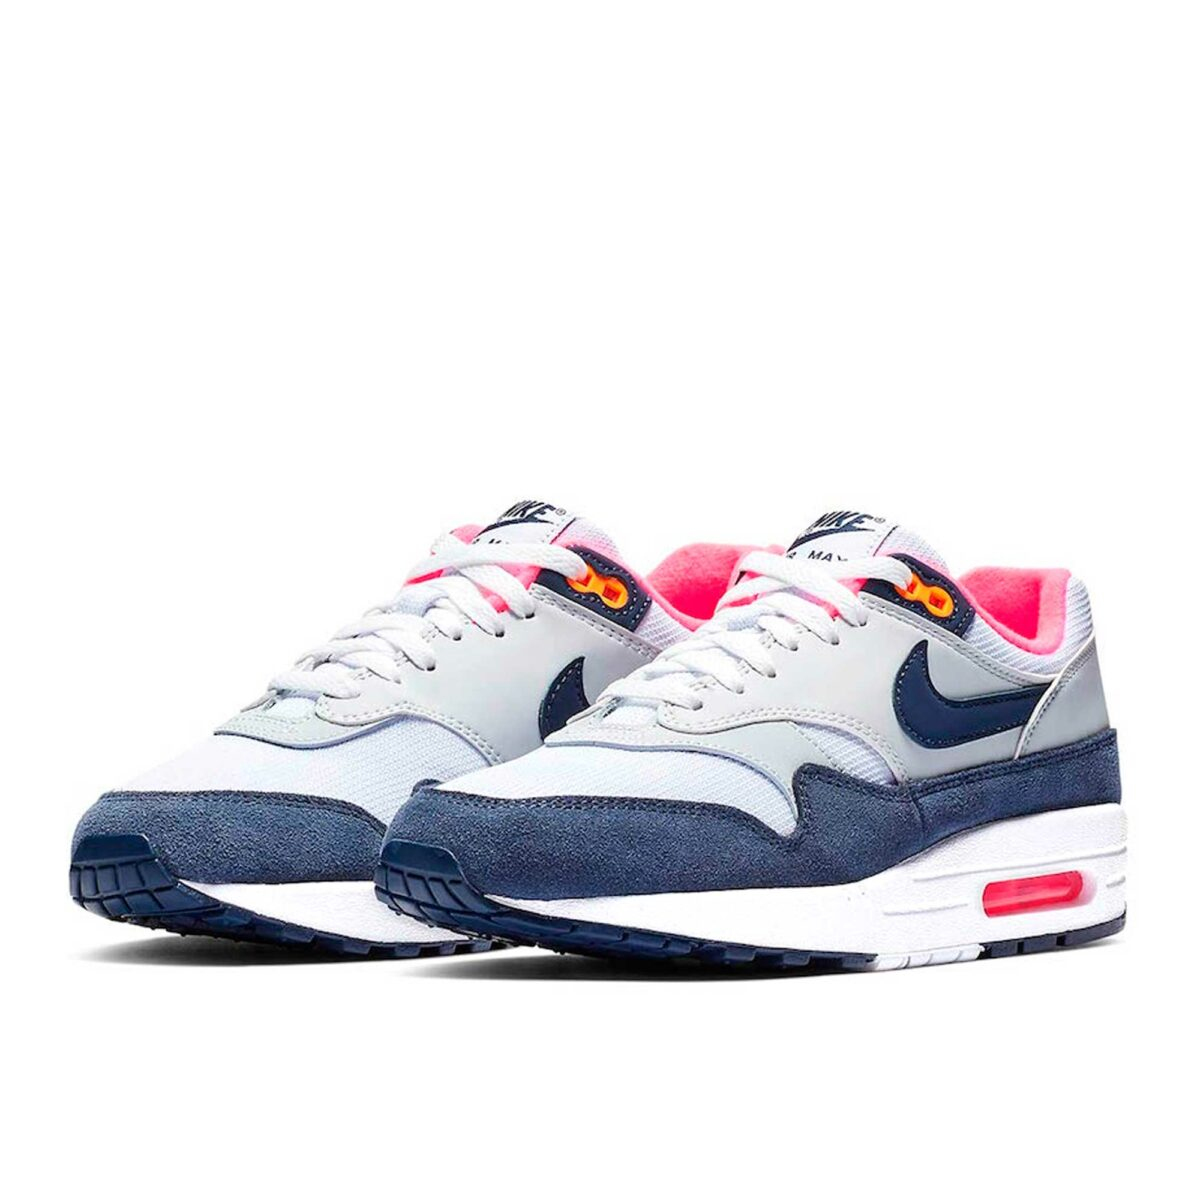 nike air max 87 white midnight navy 319986_116 купить